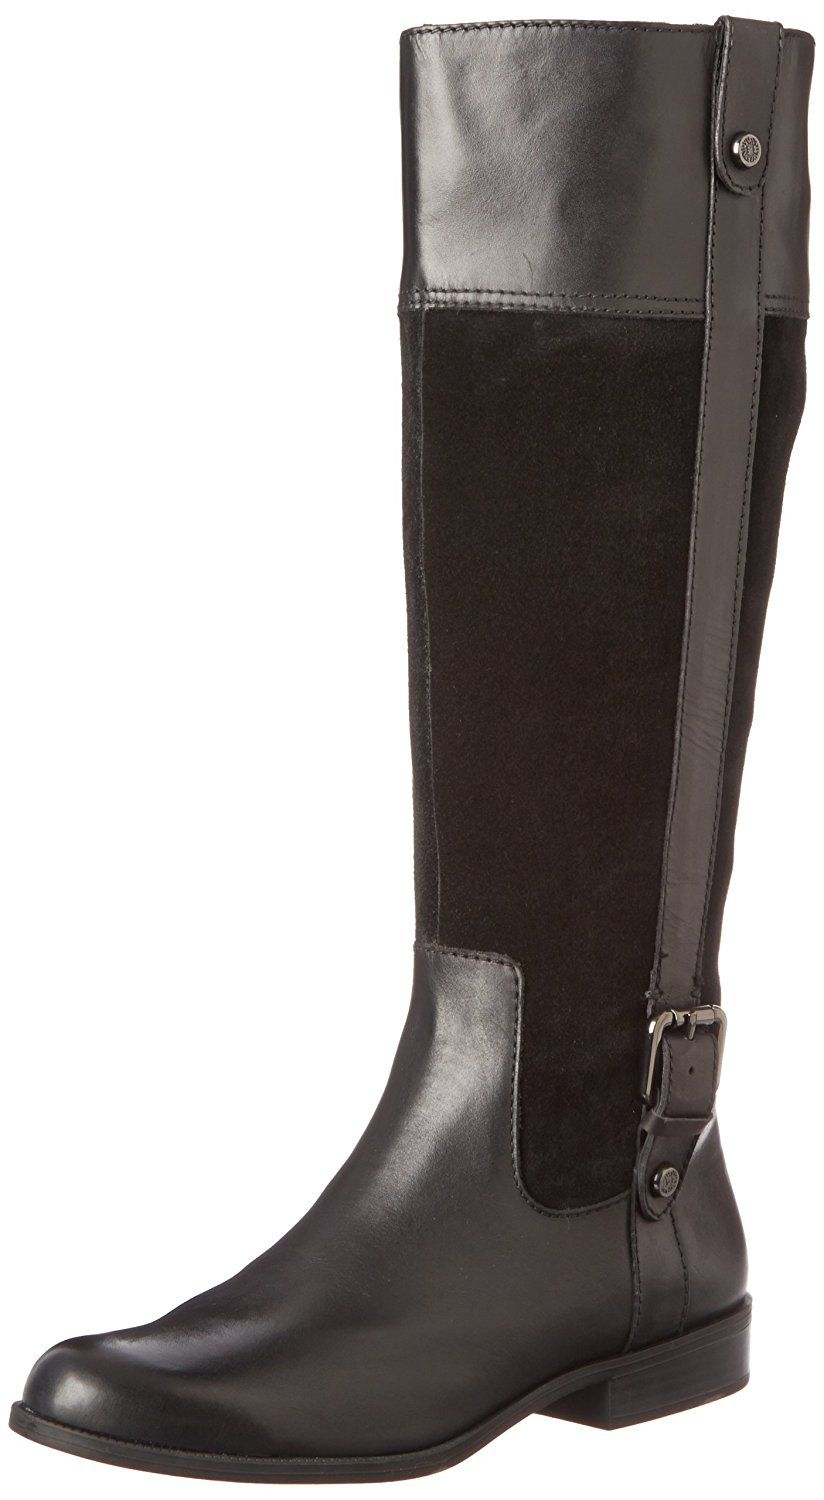 37c6e82dba3 AK Anne Klein Women s Ciji Riding Boot   Quickly view this special product